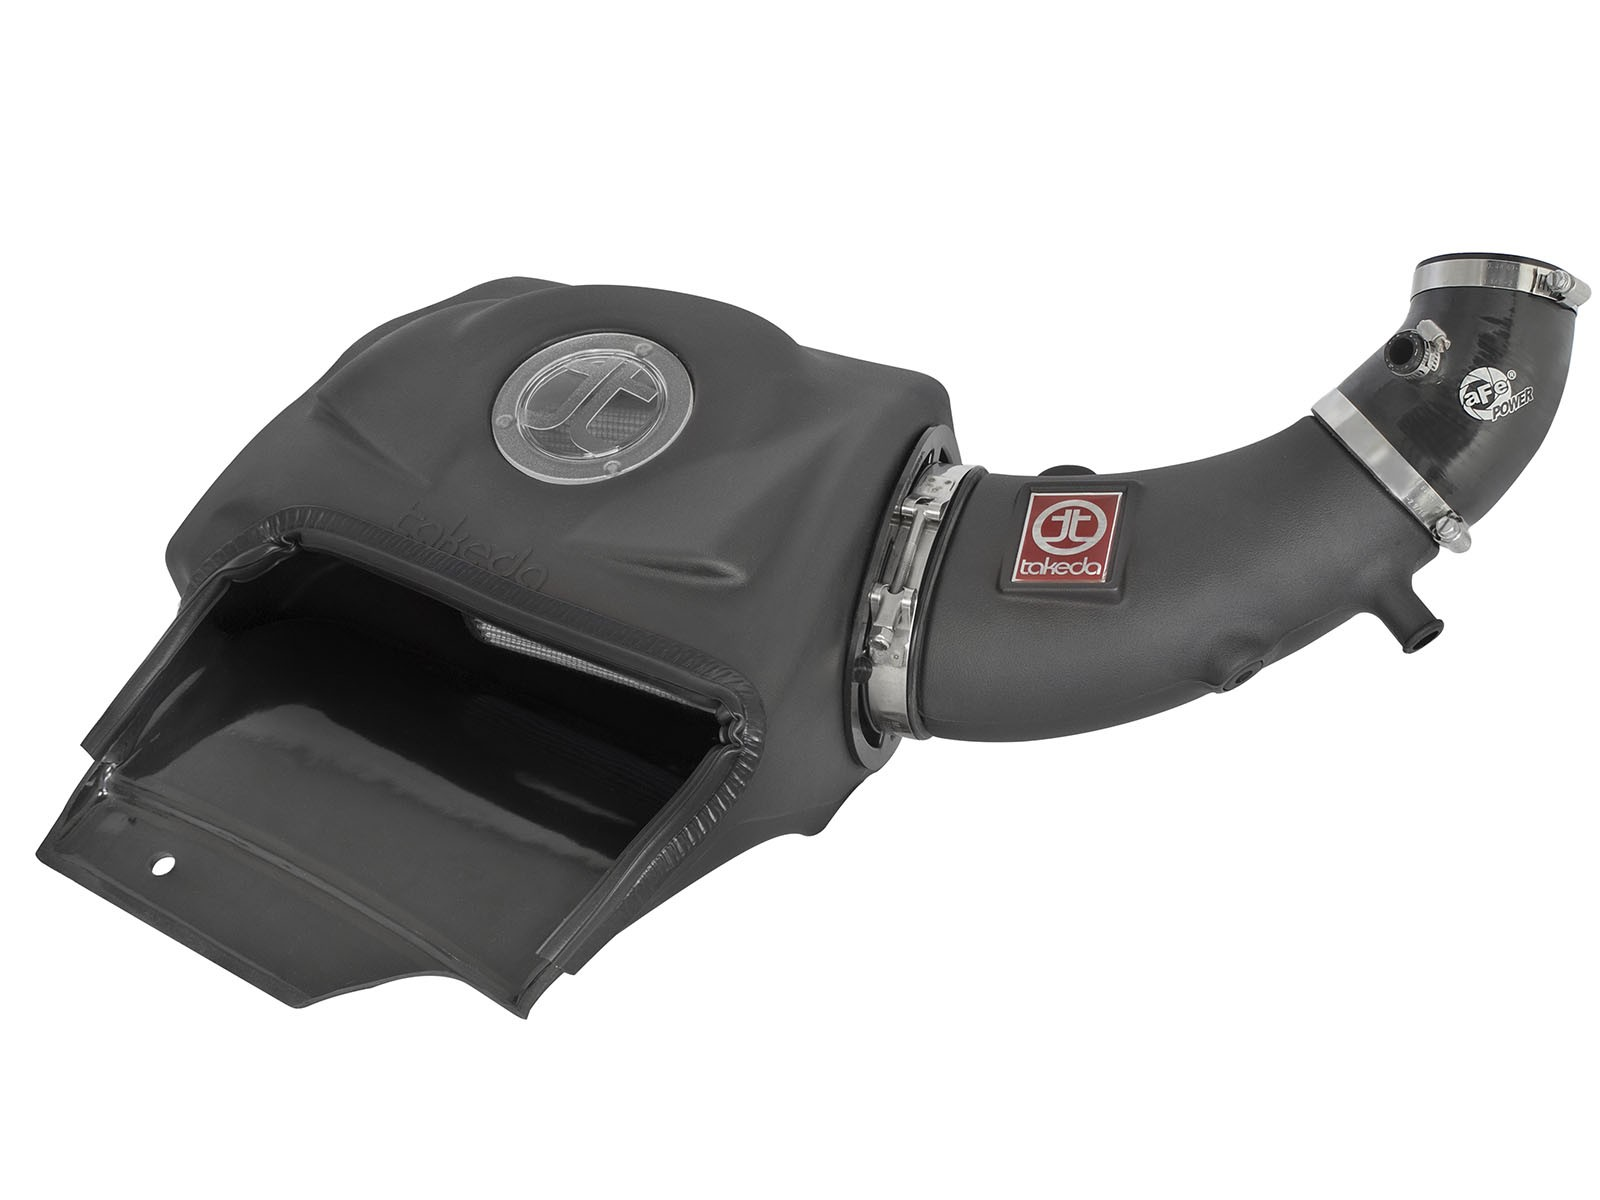 aFe POWER TM-1023B-D Takeda Stage-2 Pro DRY S Cold Air Intake System